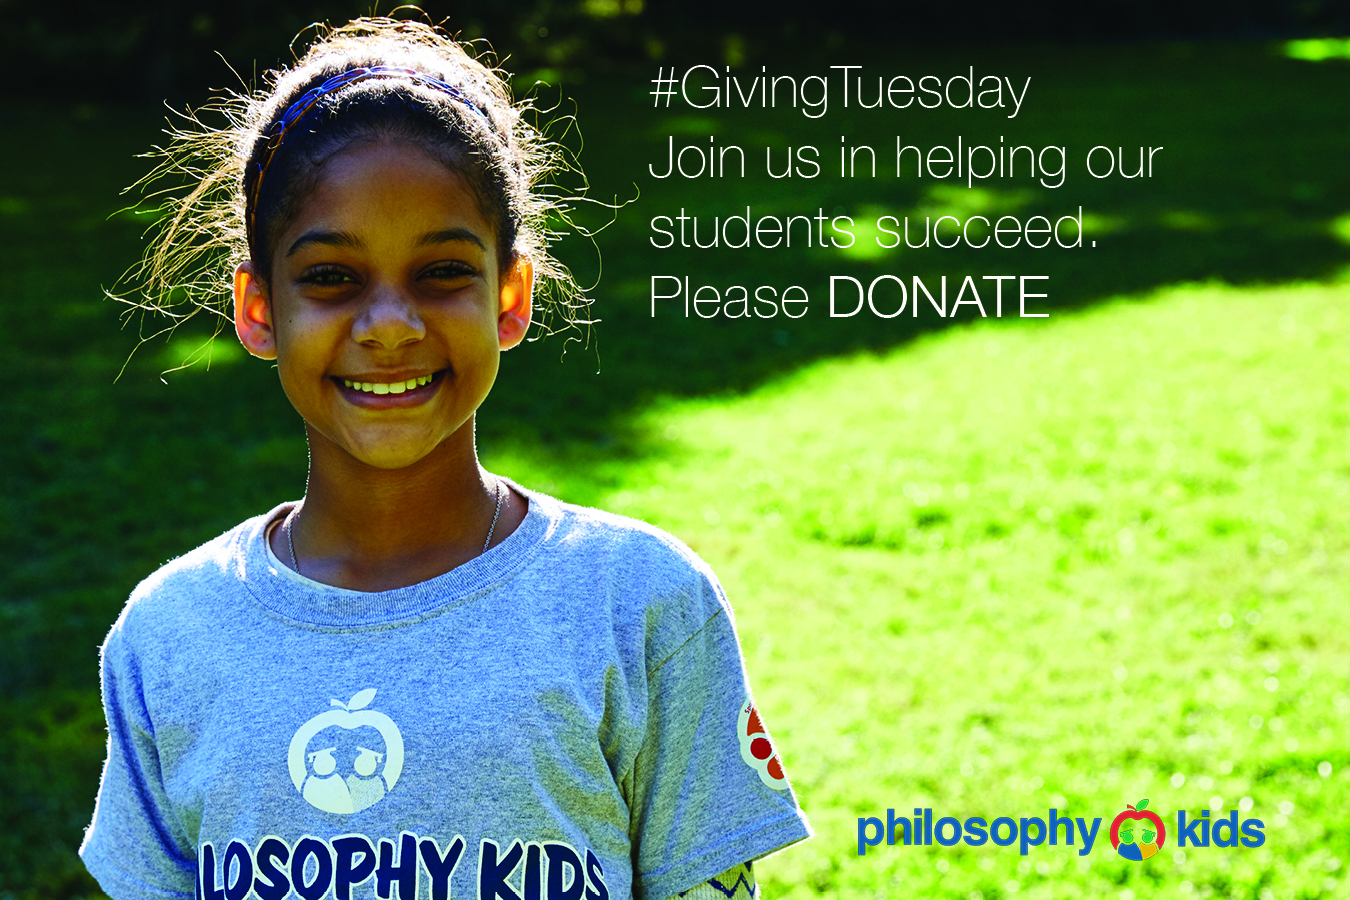 Postcard-GivingTuesday1.jpg